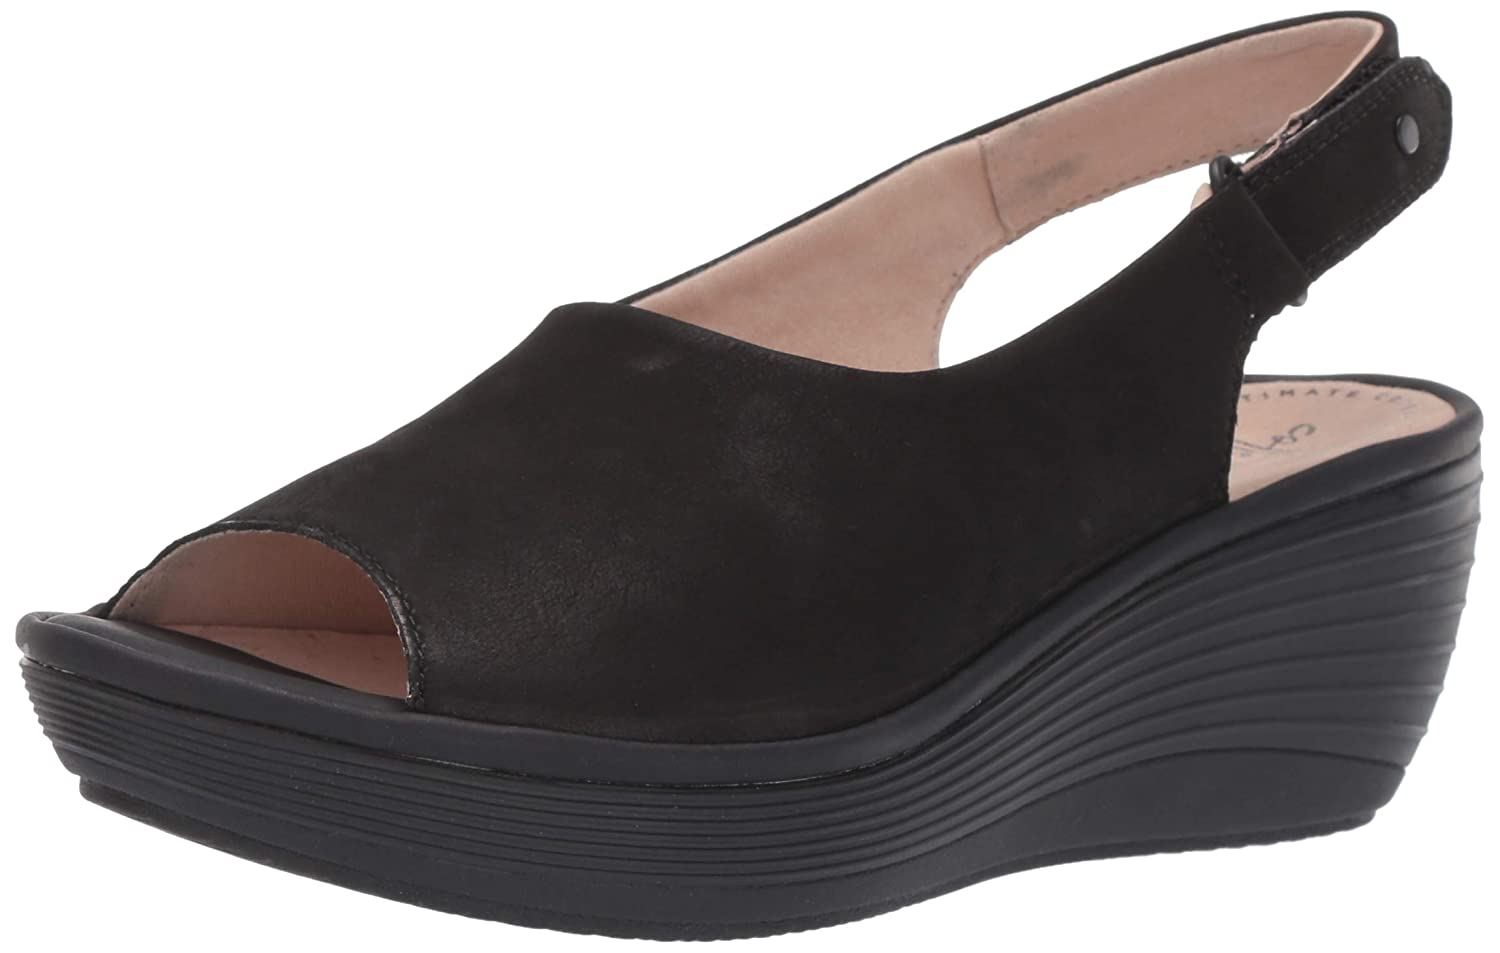 4653221d68a Amazon.com  CLARKS Women s Reedly Shaina Wedge Sandal  Shoes